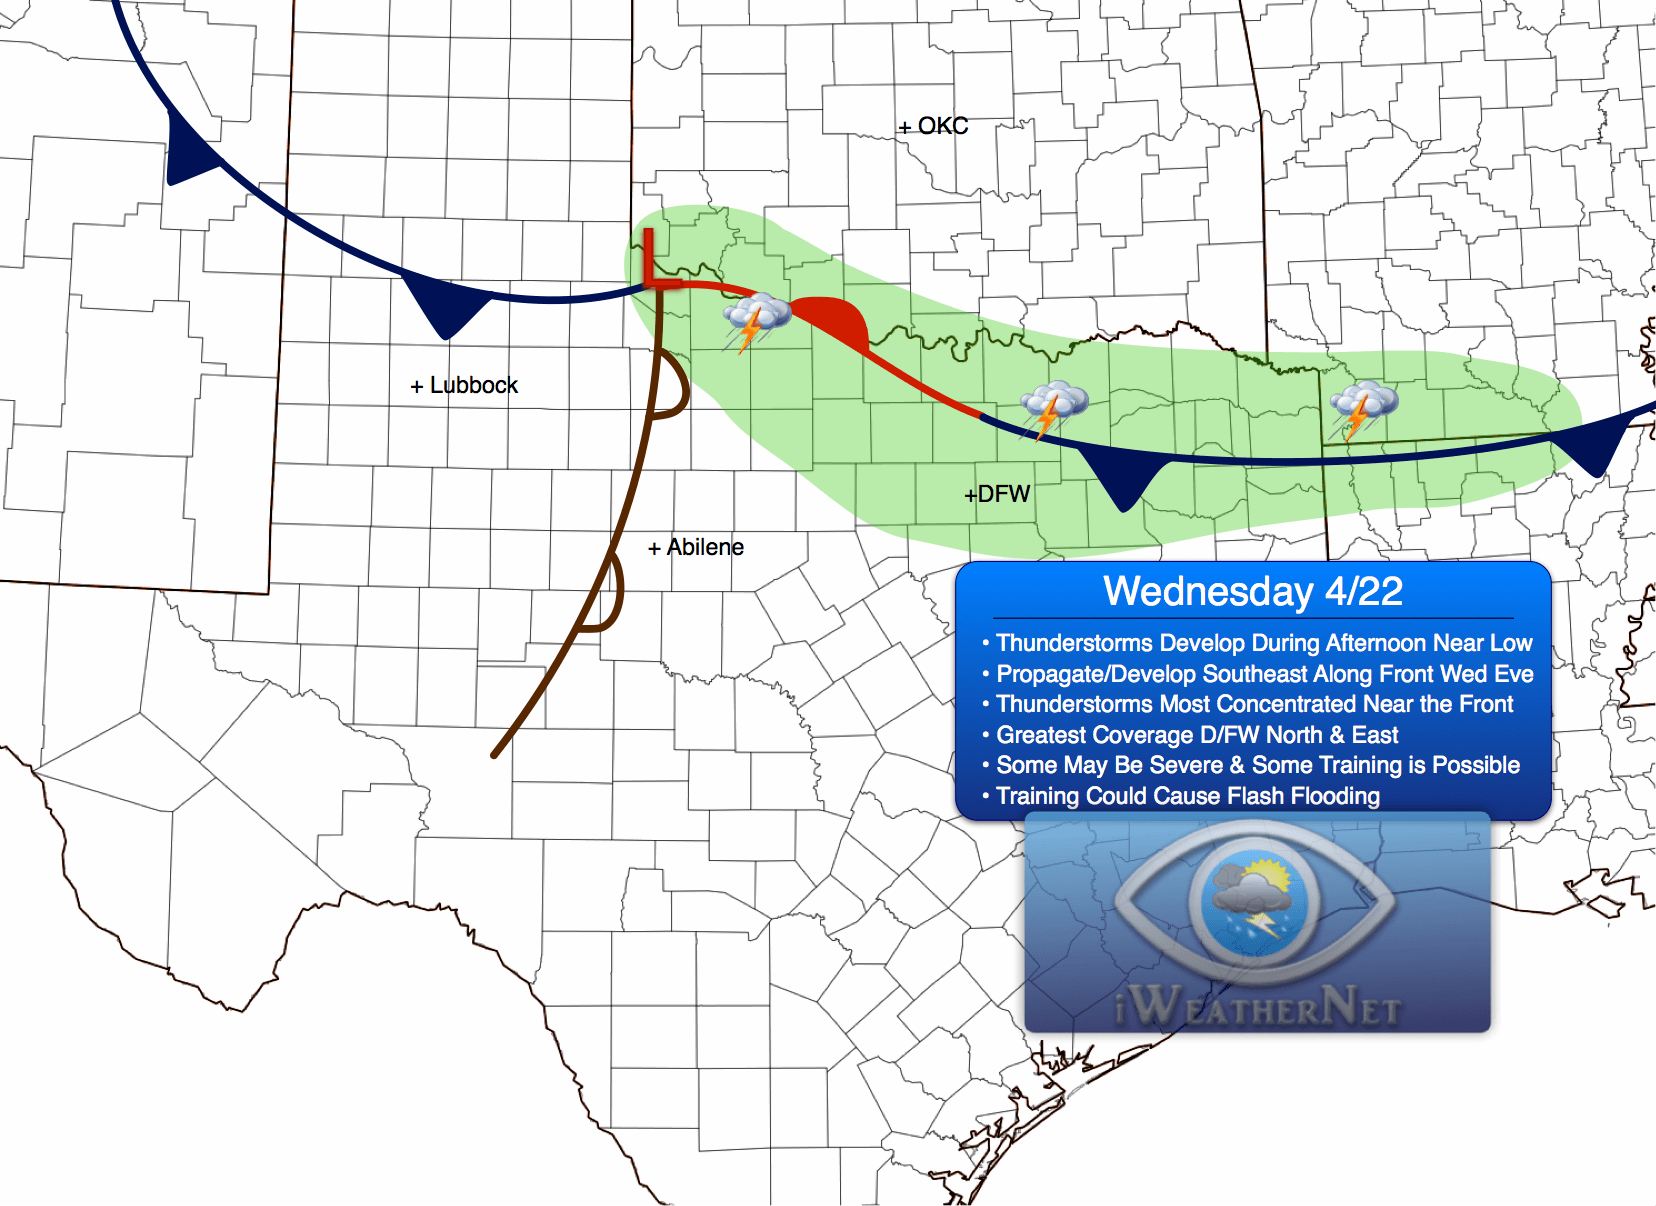 dfw  tstorms late weds  4  22  may be severe w   localized